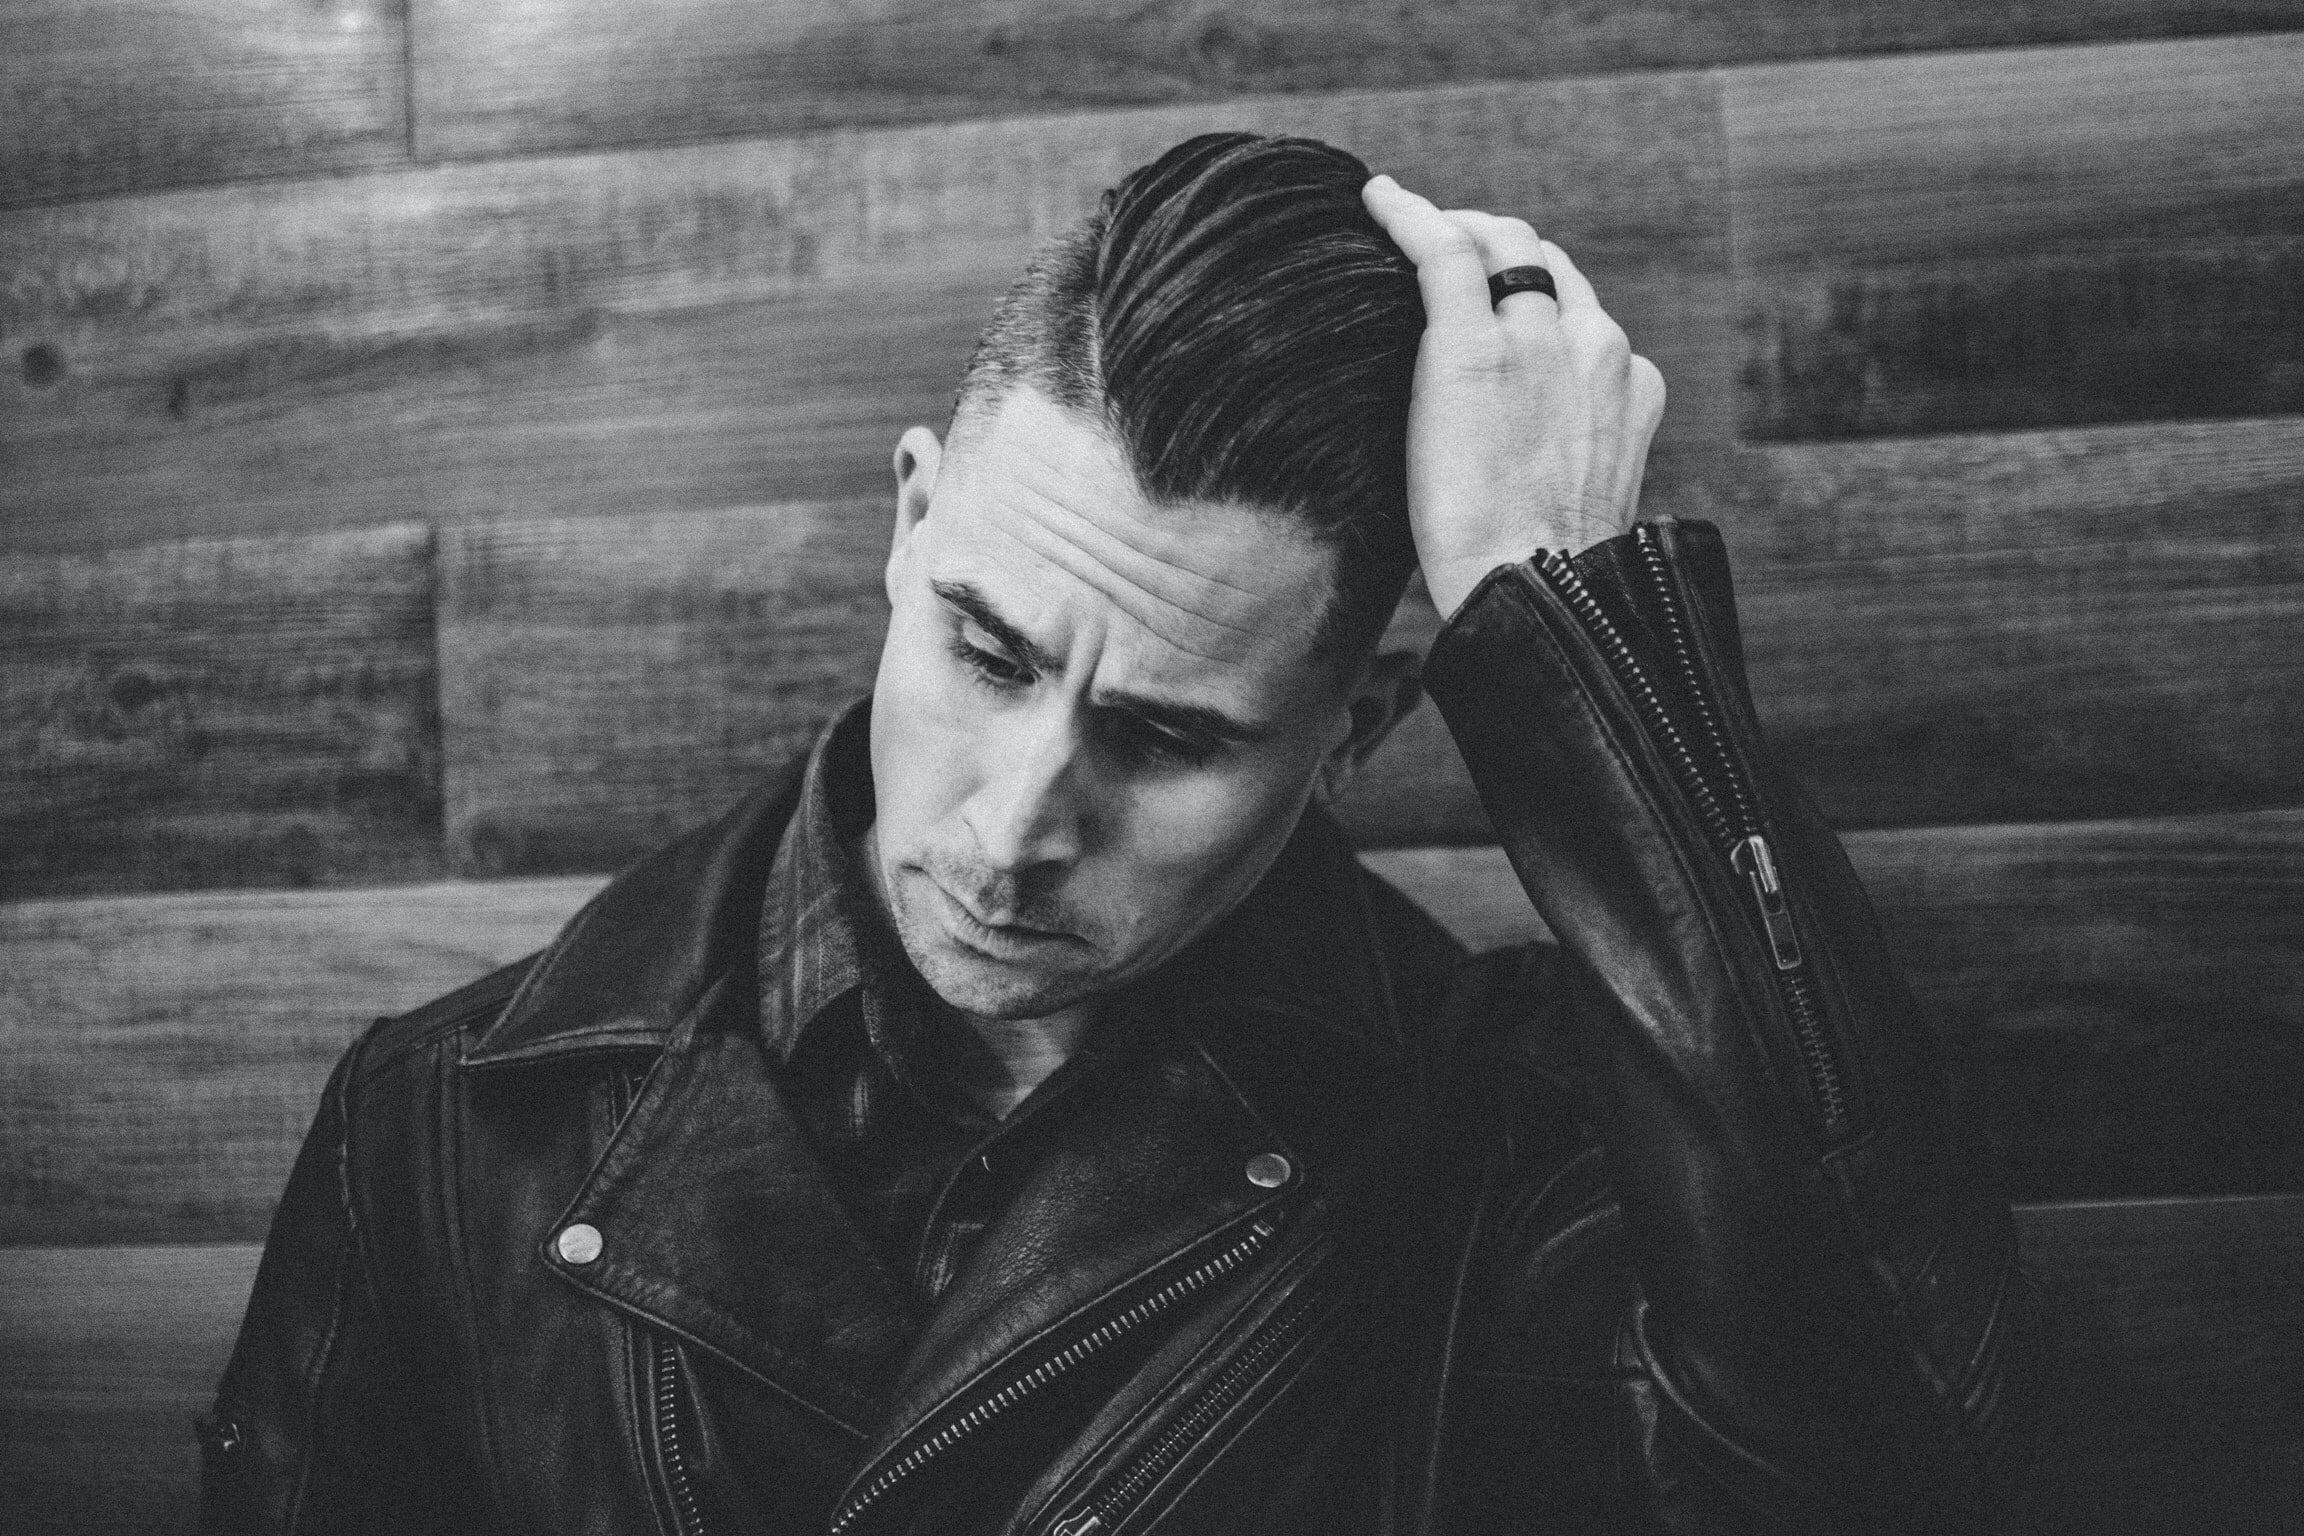 grayscale photography of man wearing leather jacket leaning against wall while fixing hair